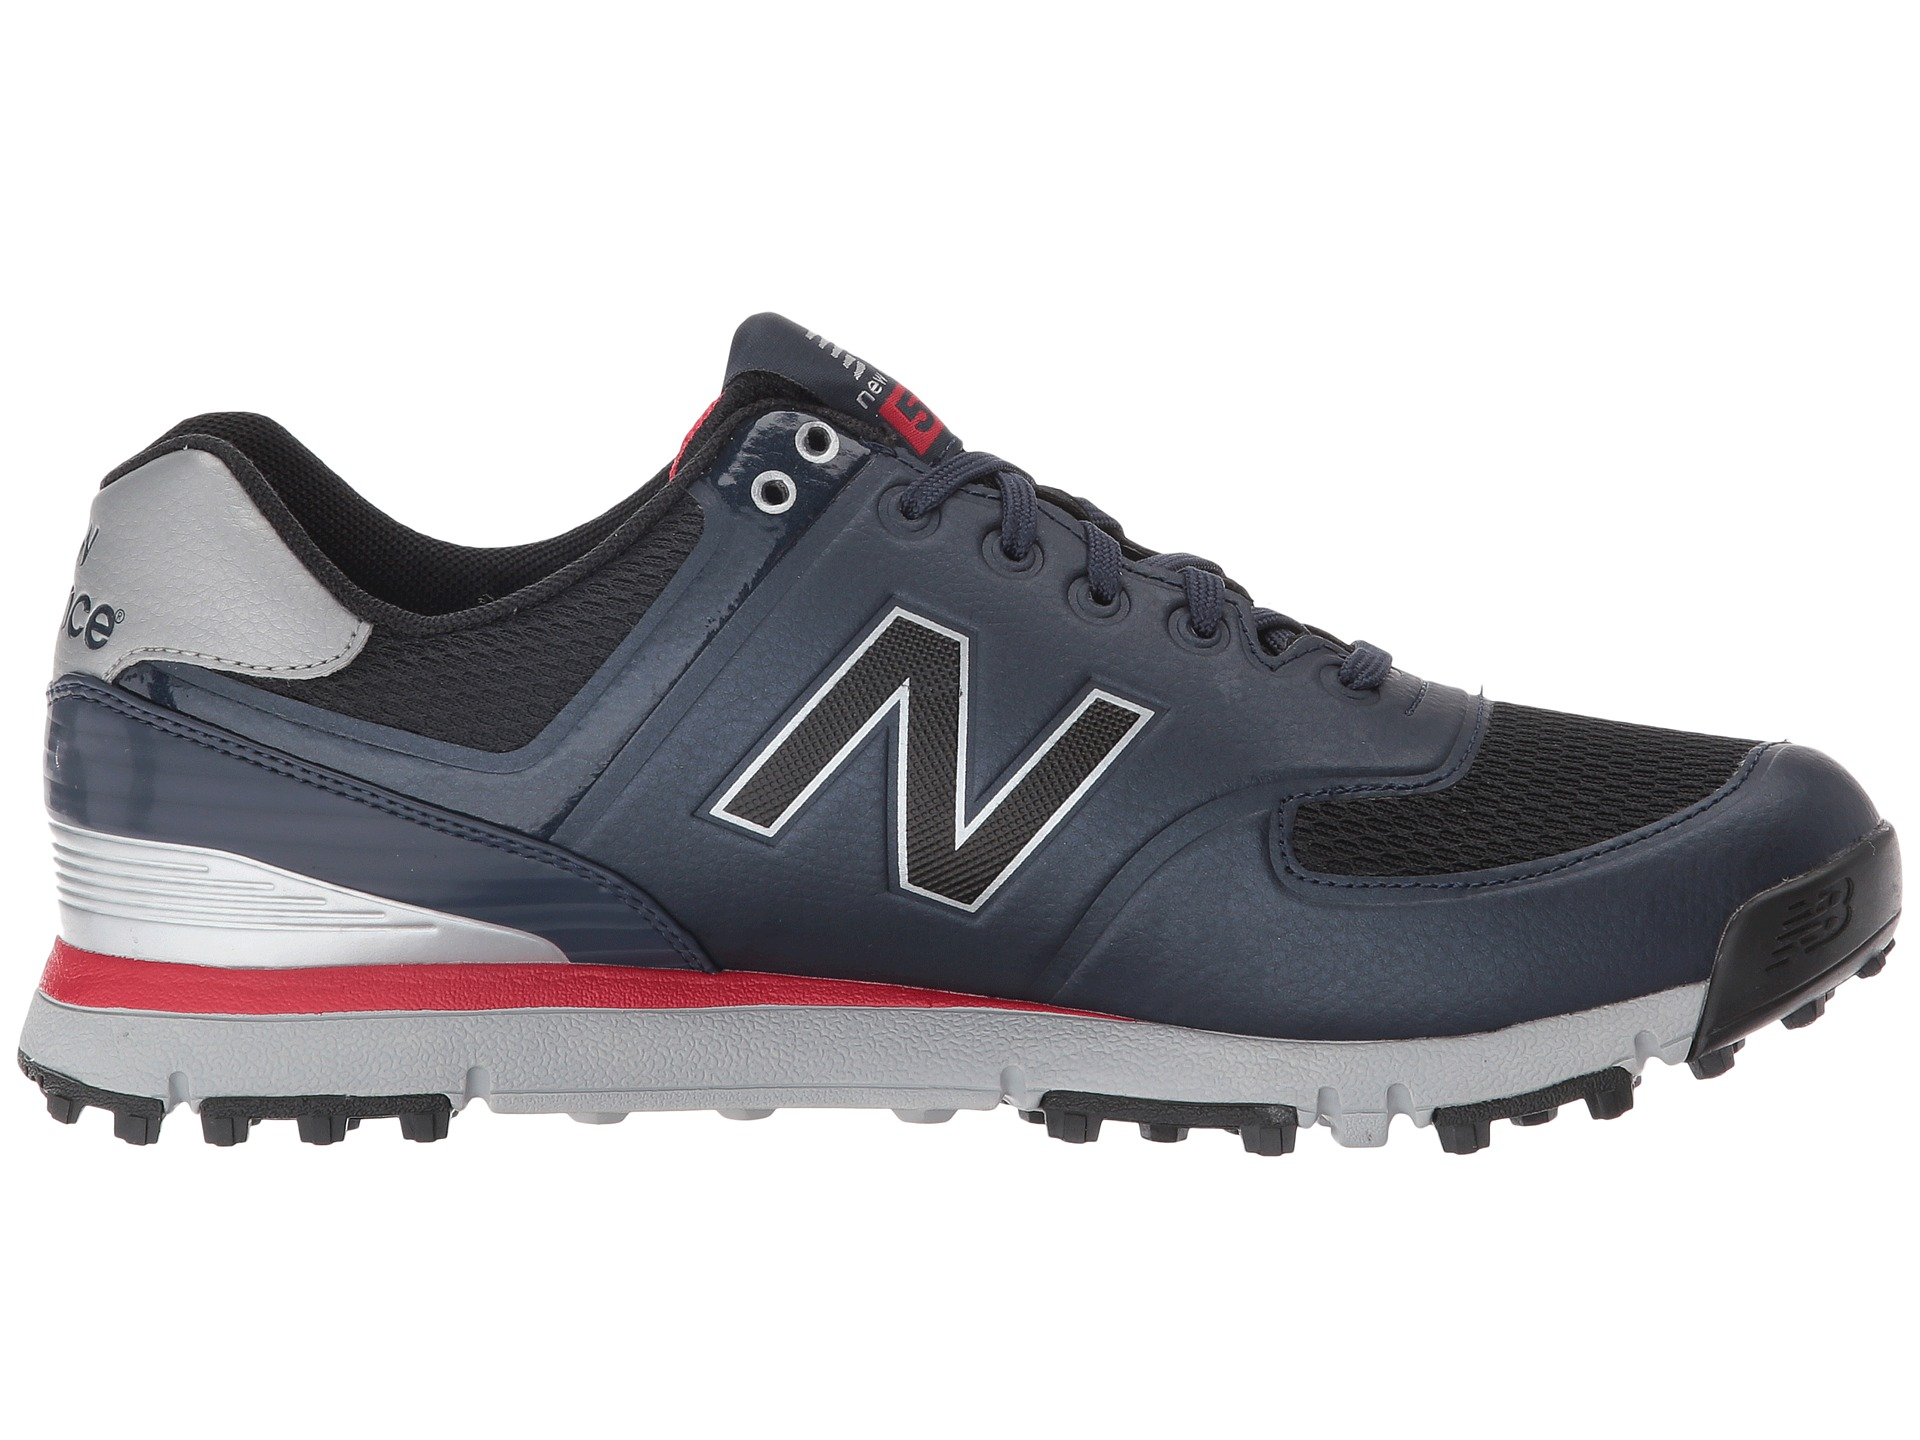 New Balance Nbg Spikeless Golf Shoes Navy Red